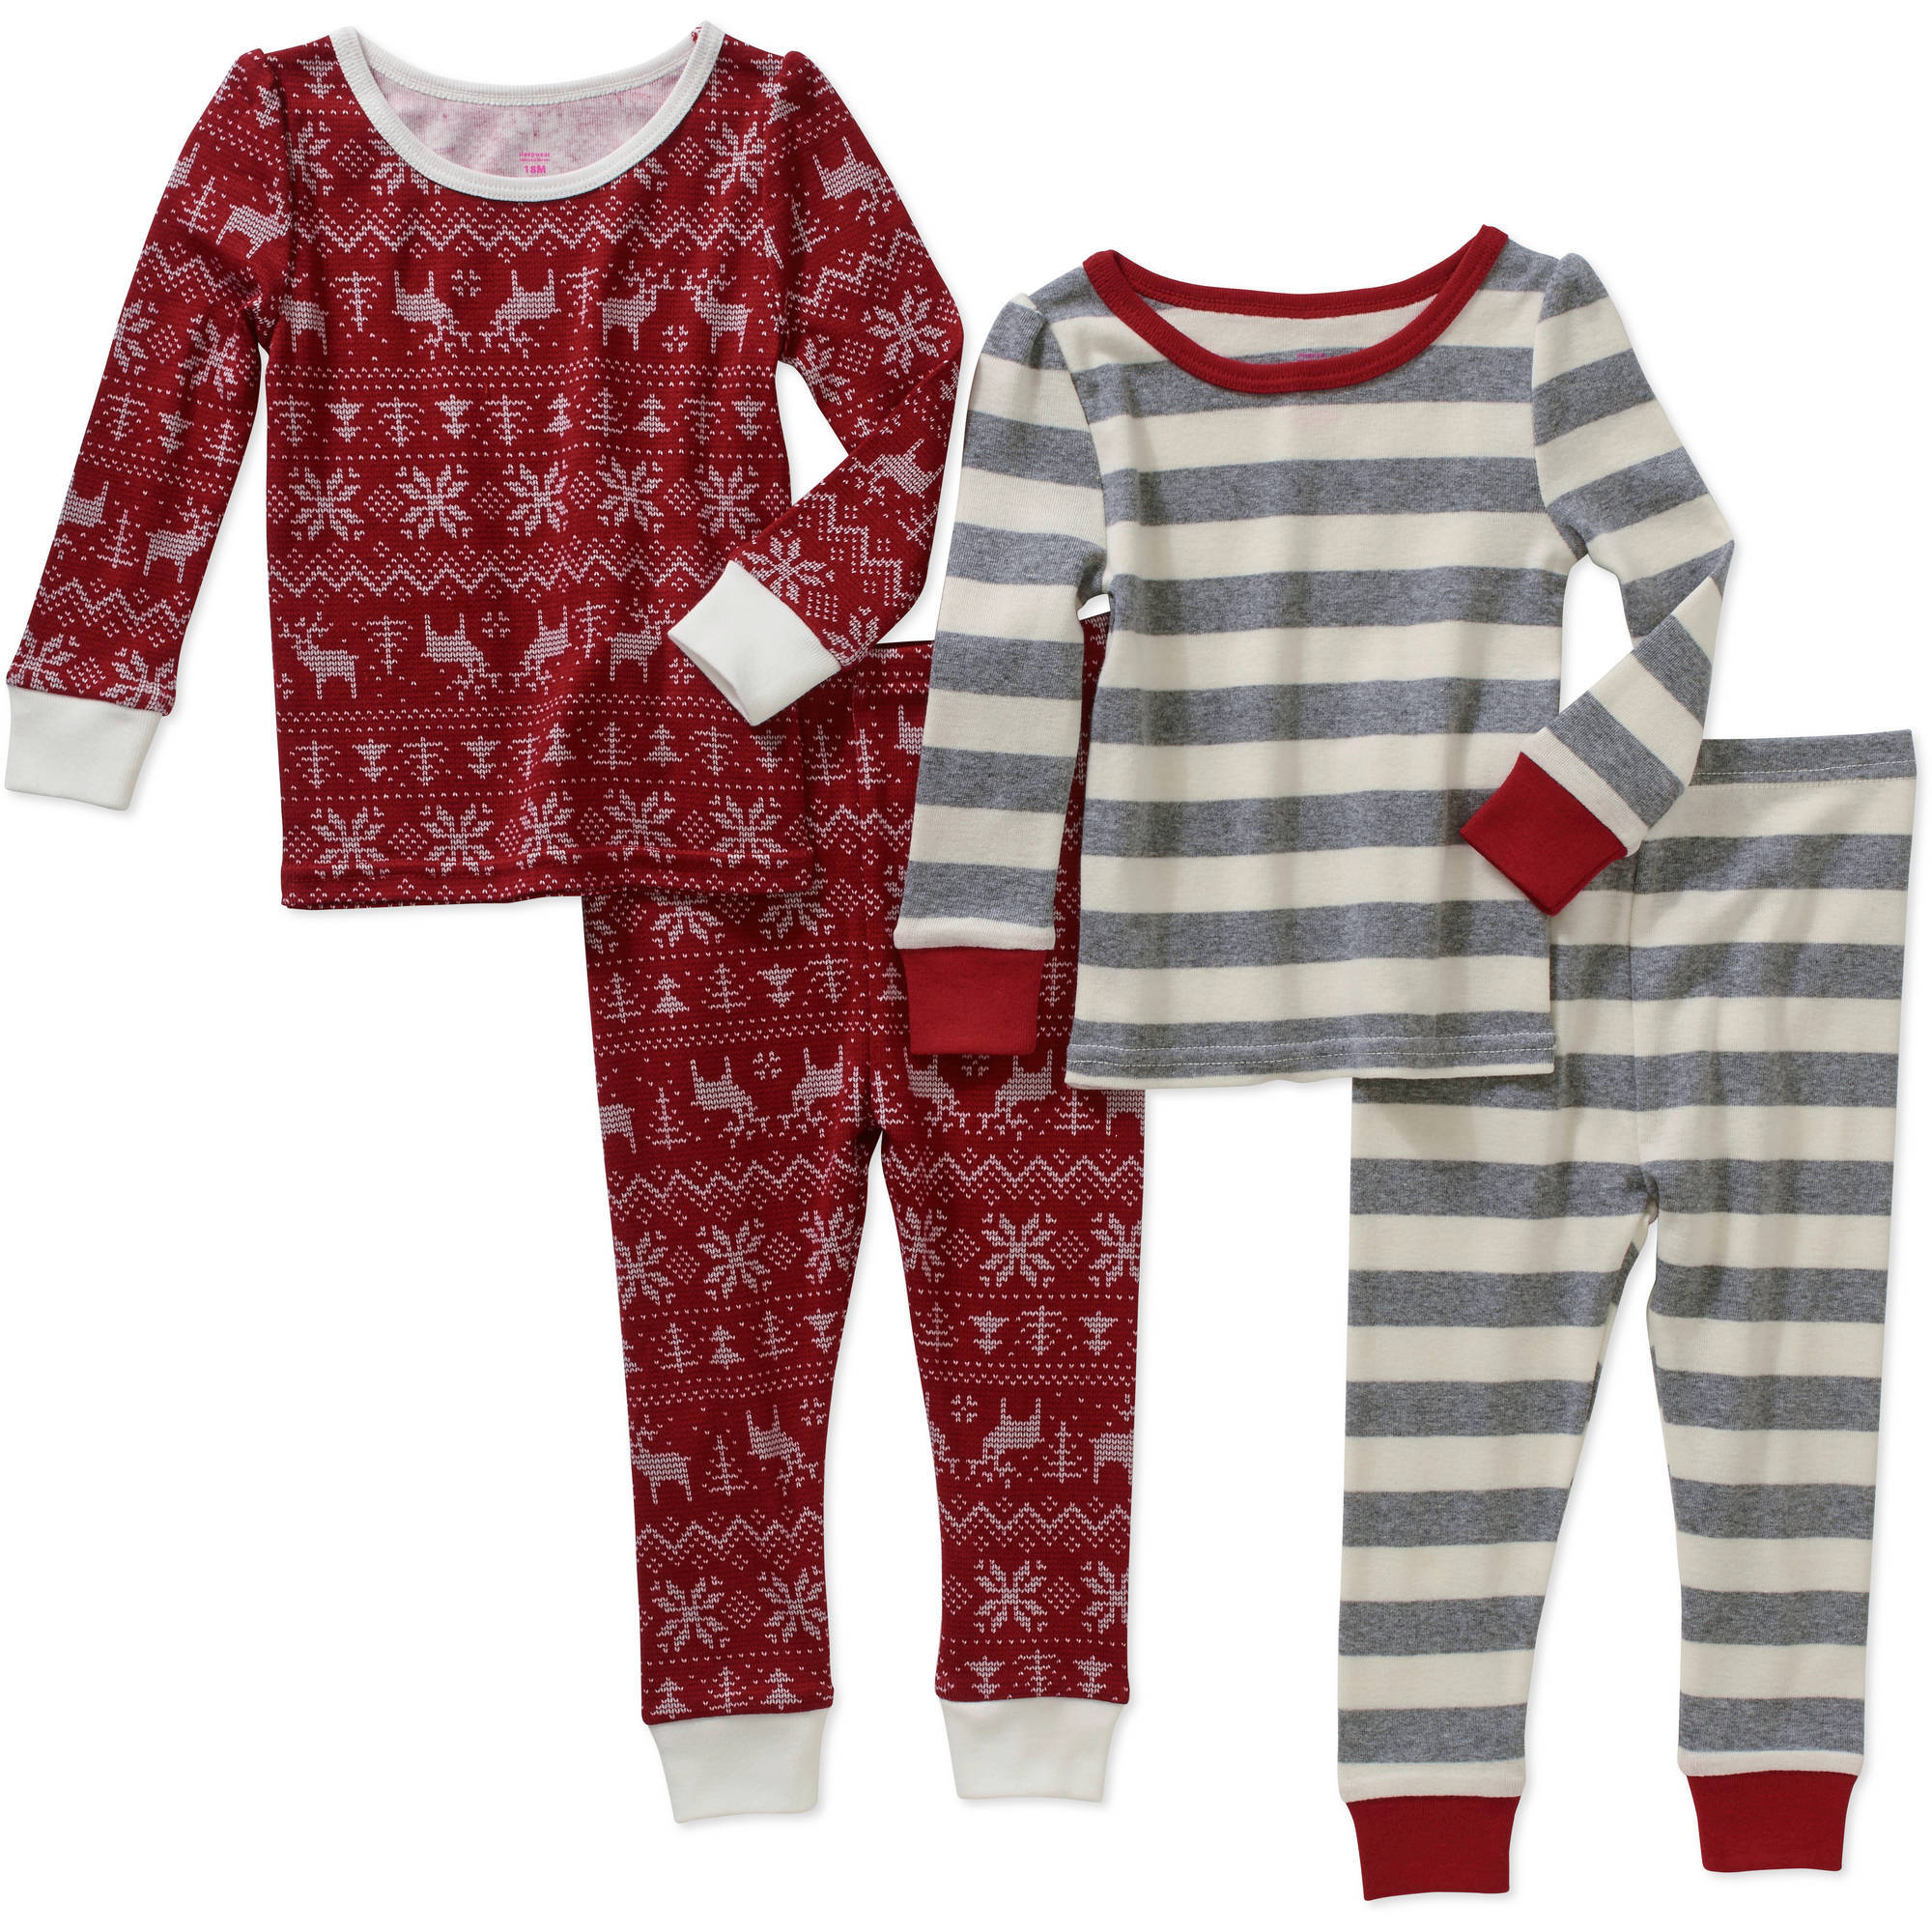 Baby Toddler Girl Cotton Tight Fit Pajamas, 4-piece set